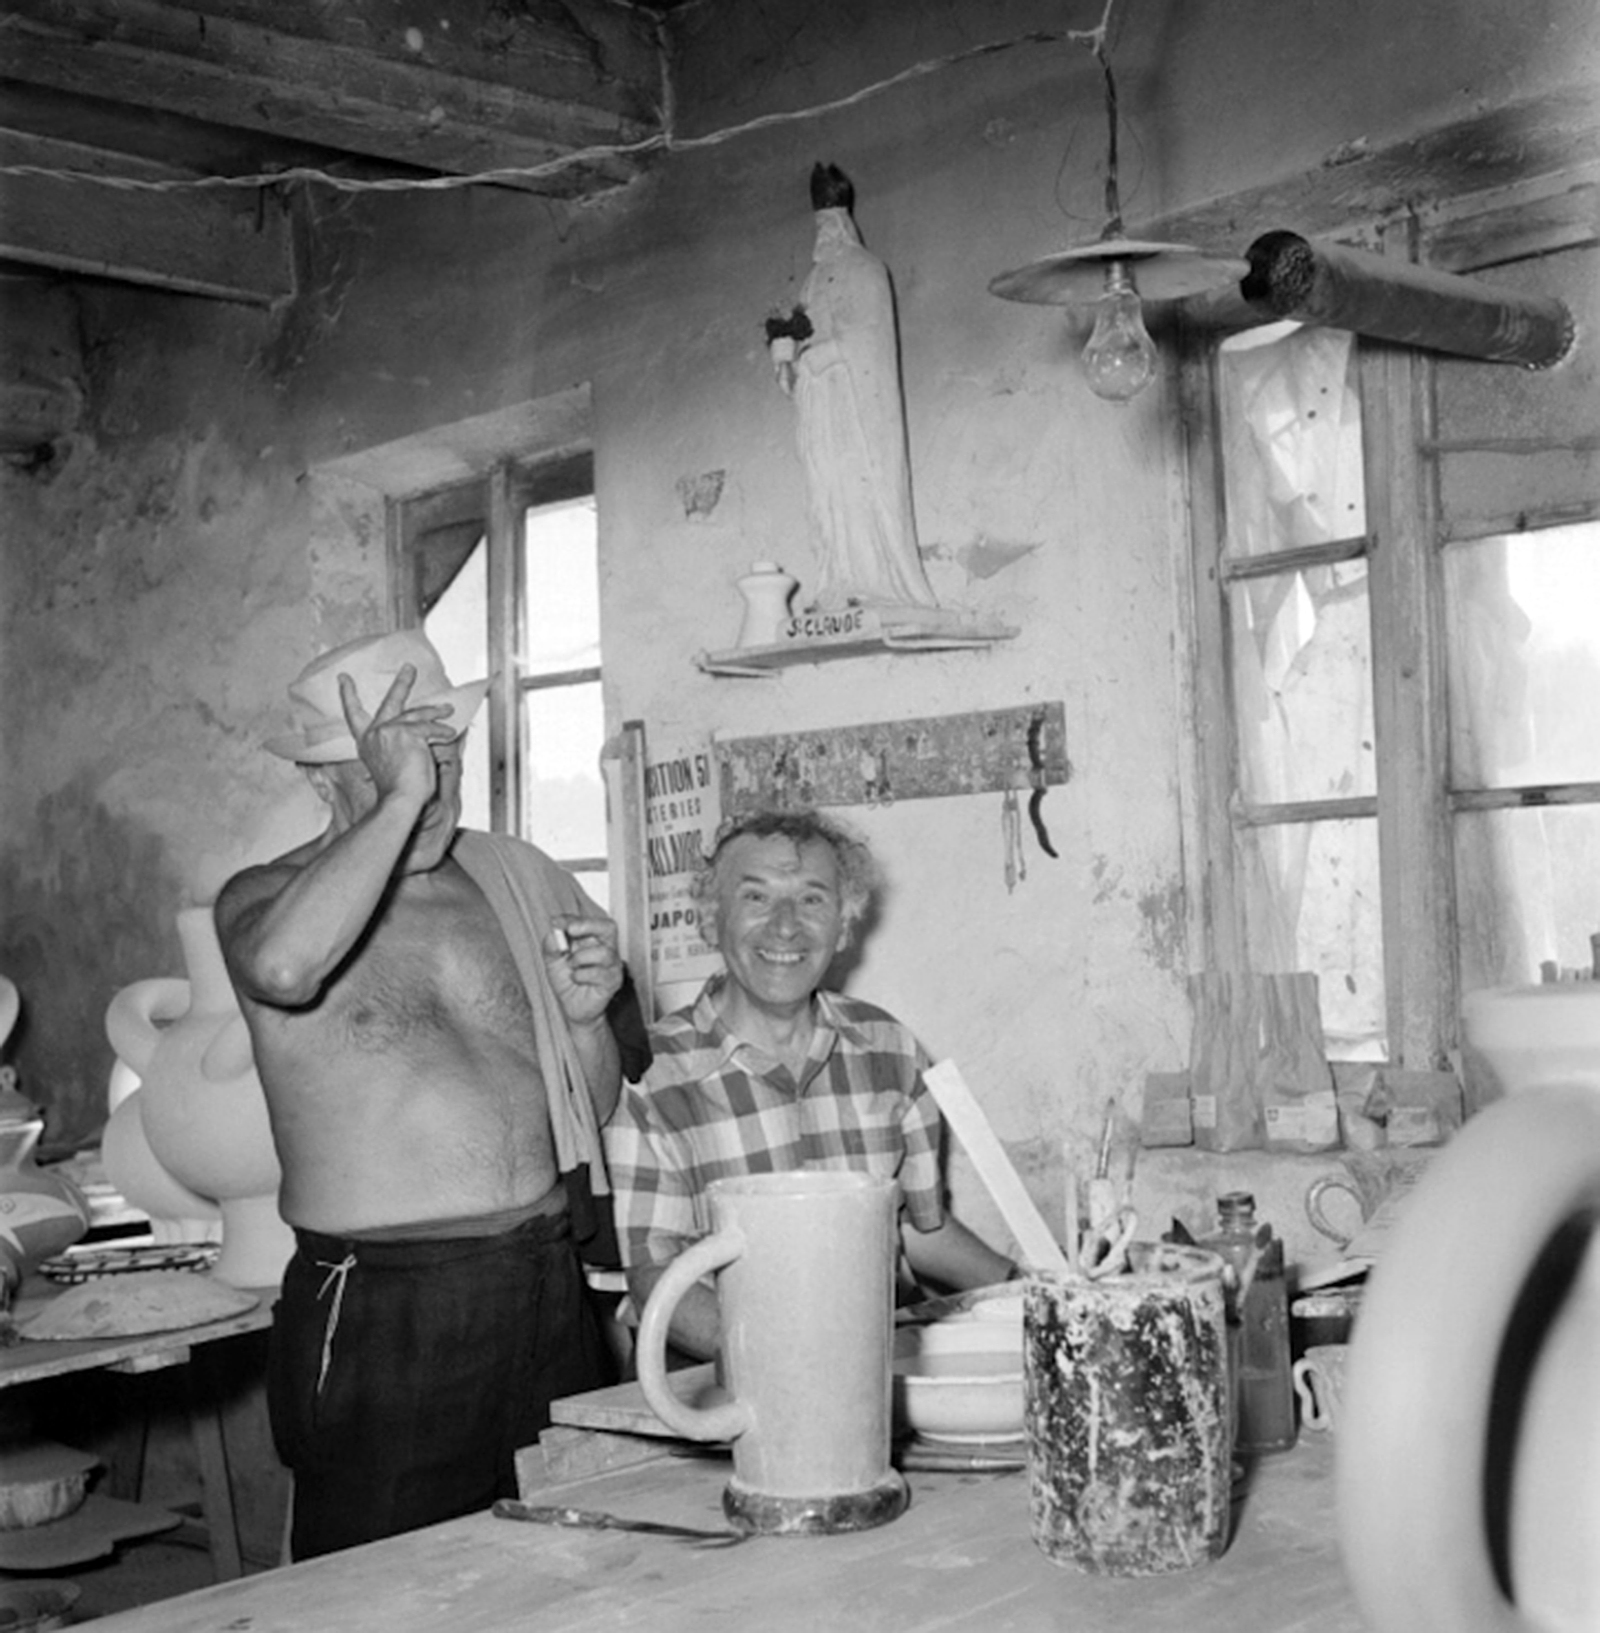 Pablo Picasso and Marc Chagall at the Madoura ceramics workshop in Vallauris 1948 - Photo Getty Images